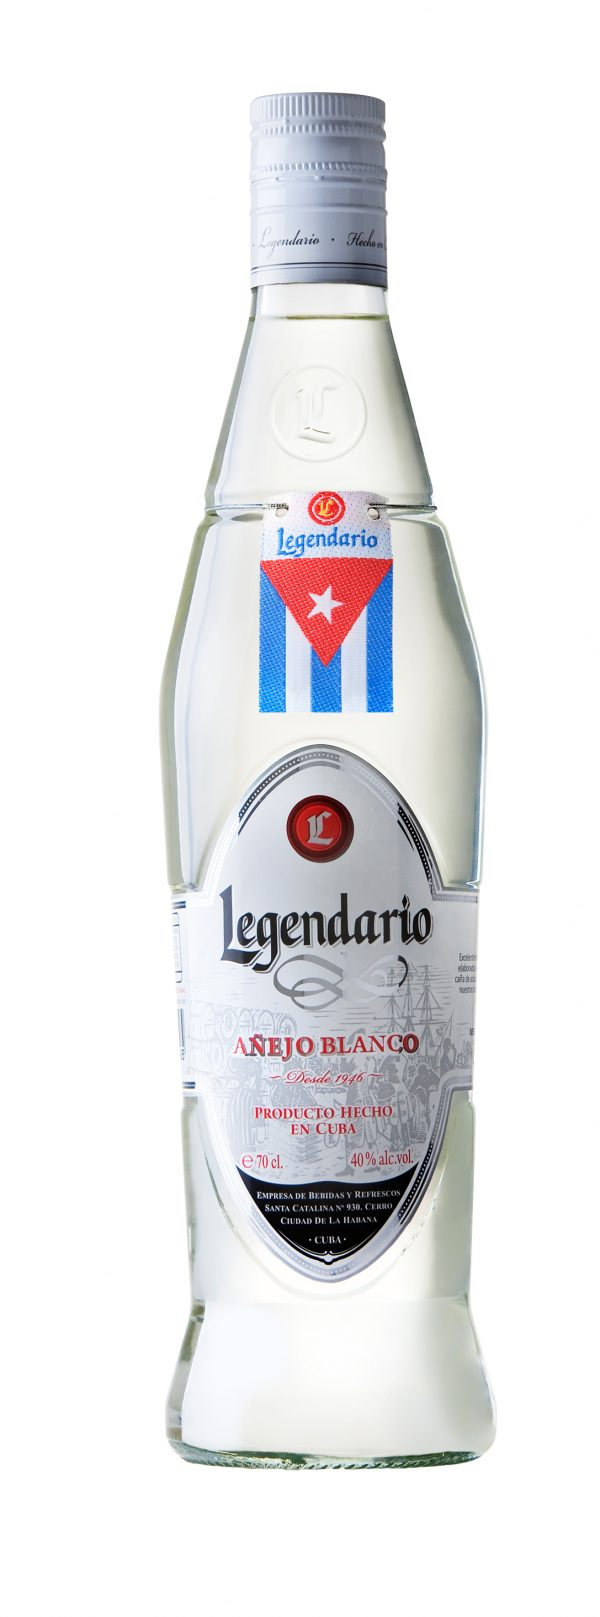 ron añejo blanco legendario